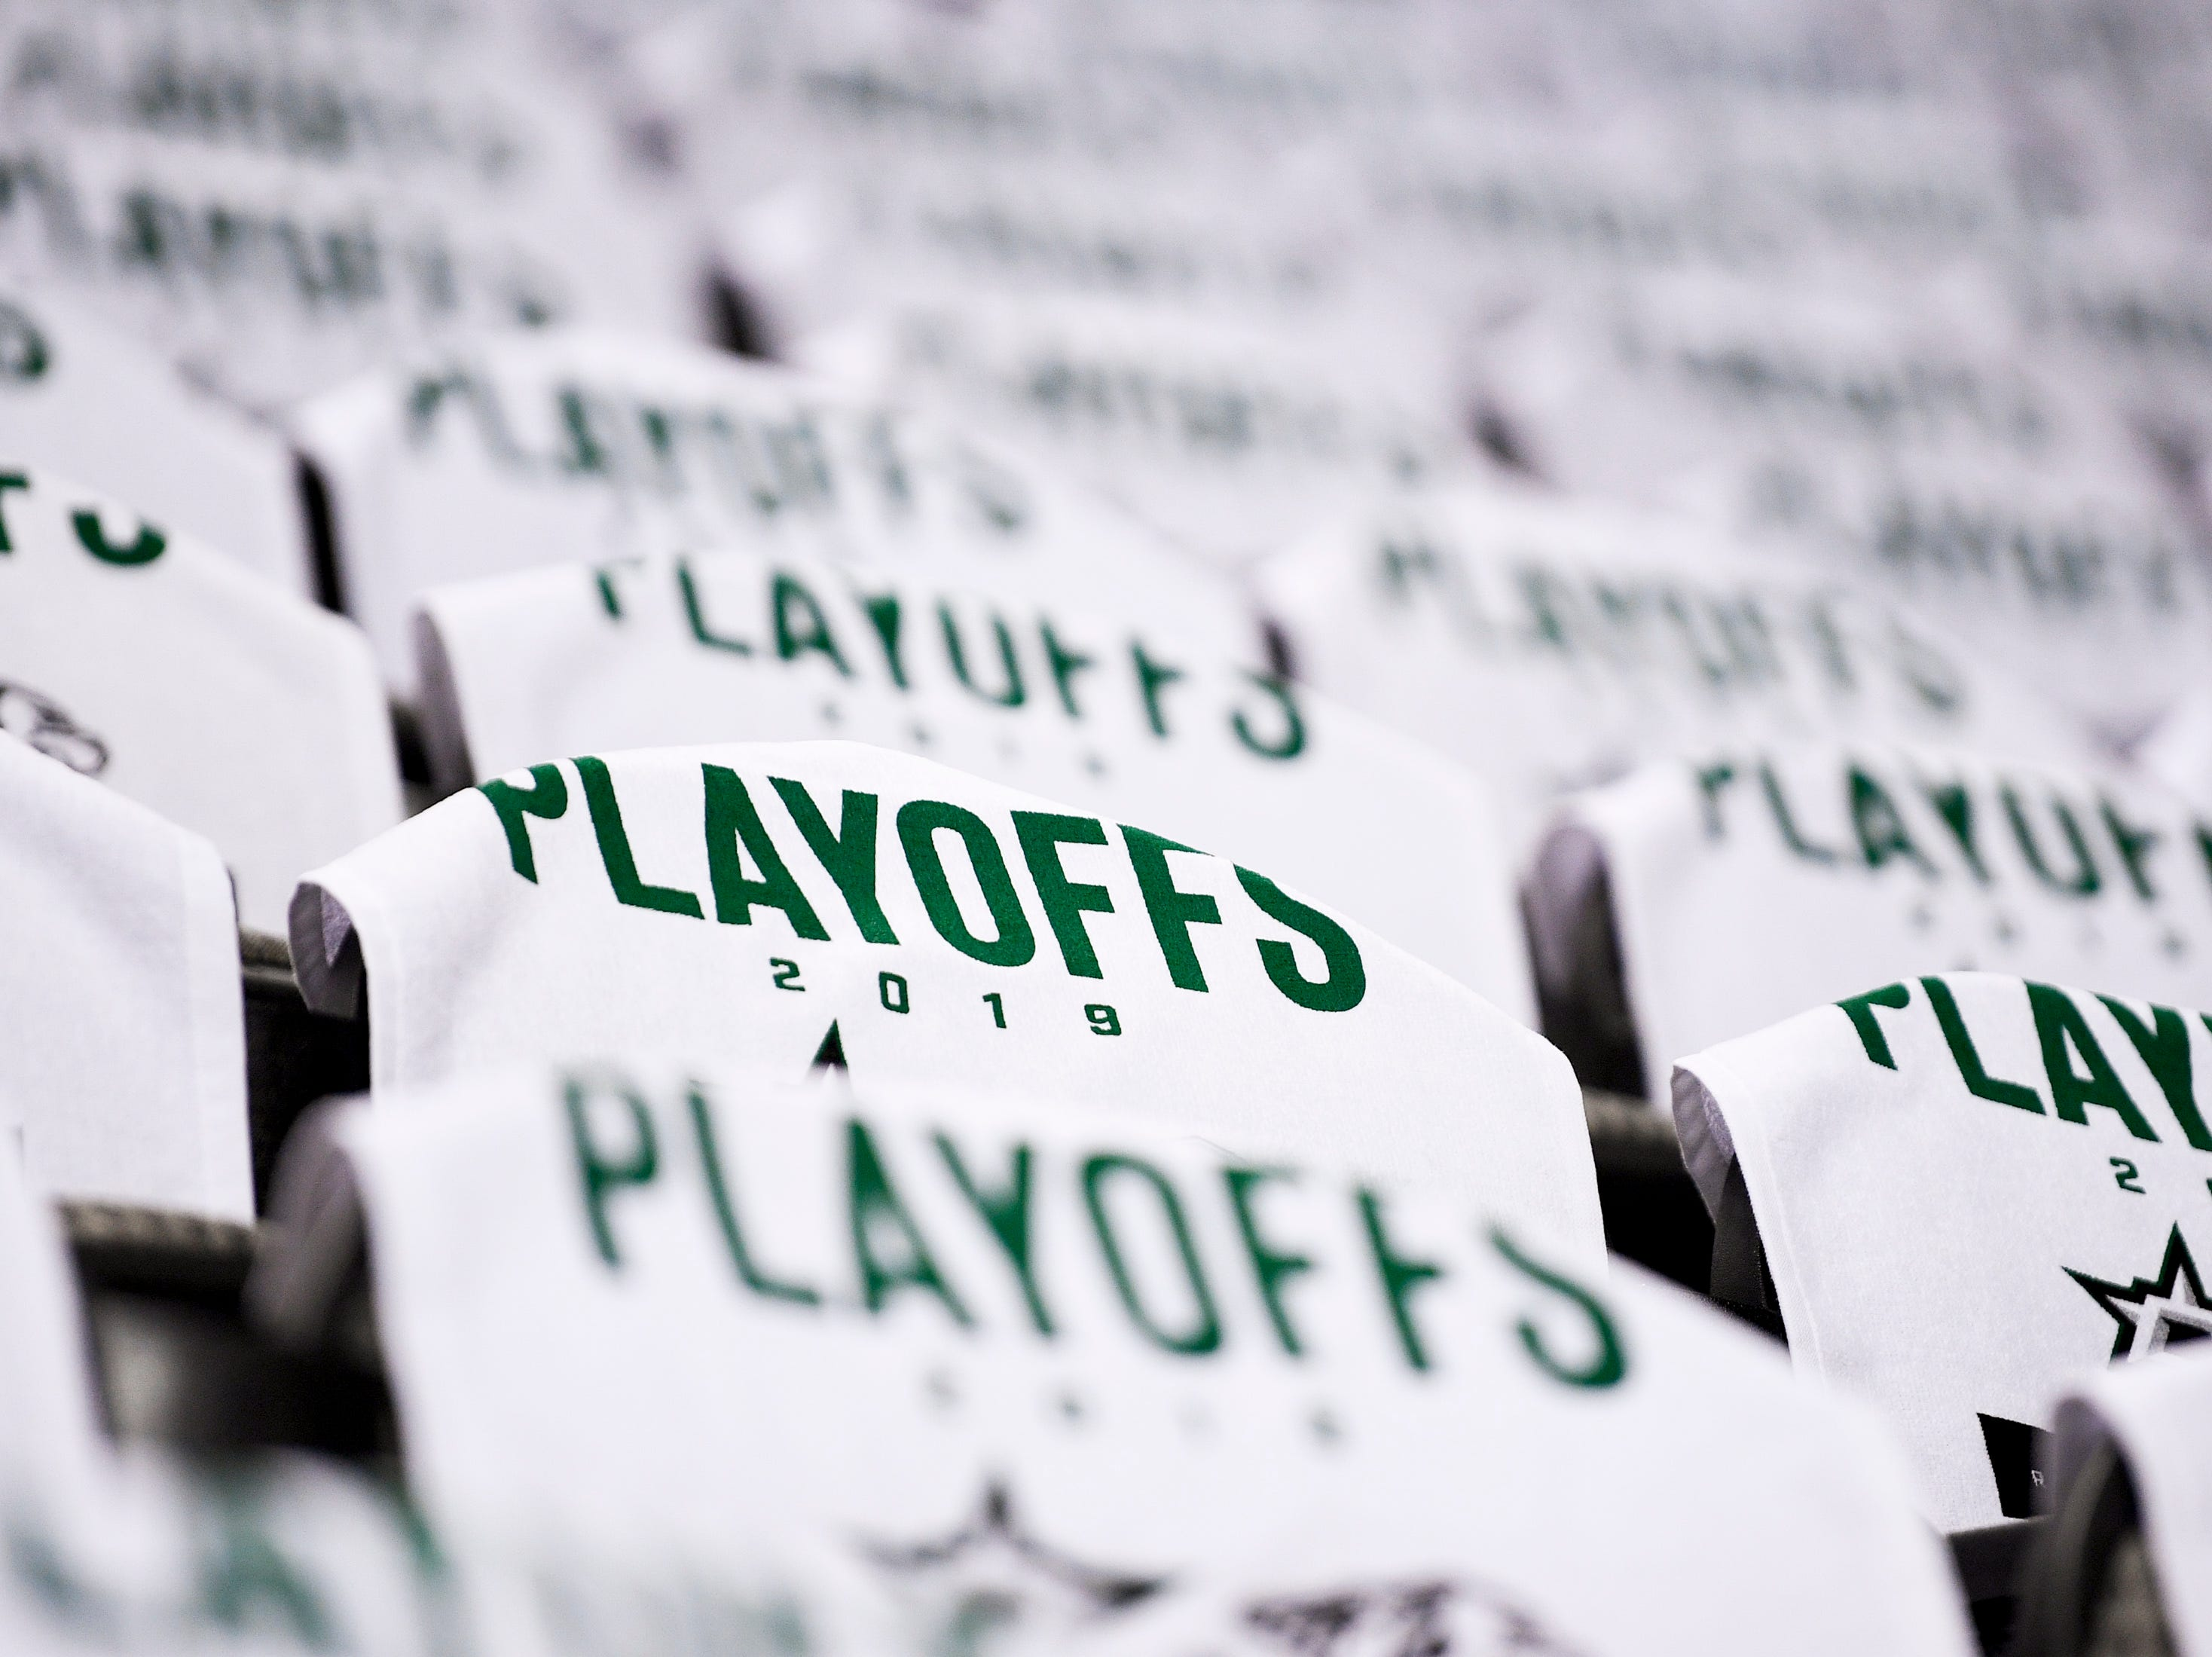 Souvenir towels sit on seats before the divisional semifinal game between the Nashville Predators and the Dallas Stars at the American Airlines Center in Dallas, Texas., Monday, April 15, 2019.